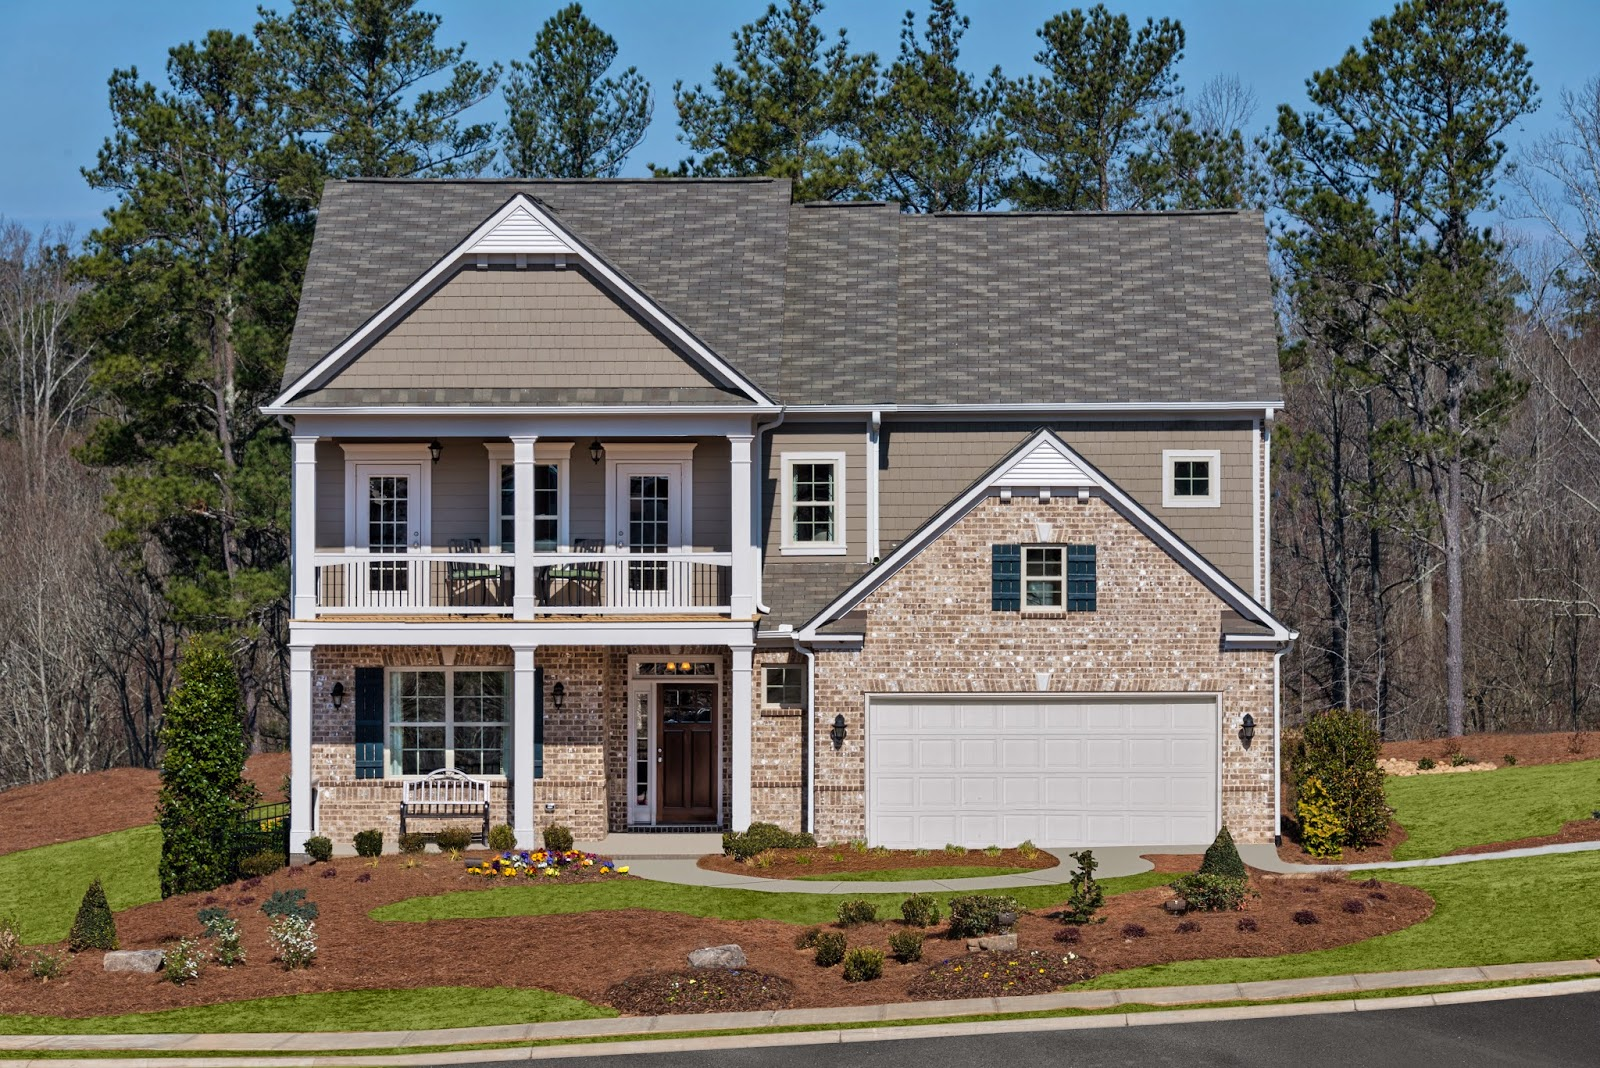 Ryland homes opens new model at summit at shiloh in alpharetta